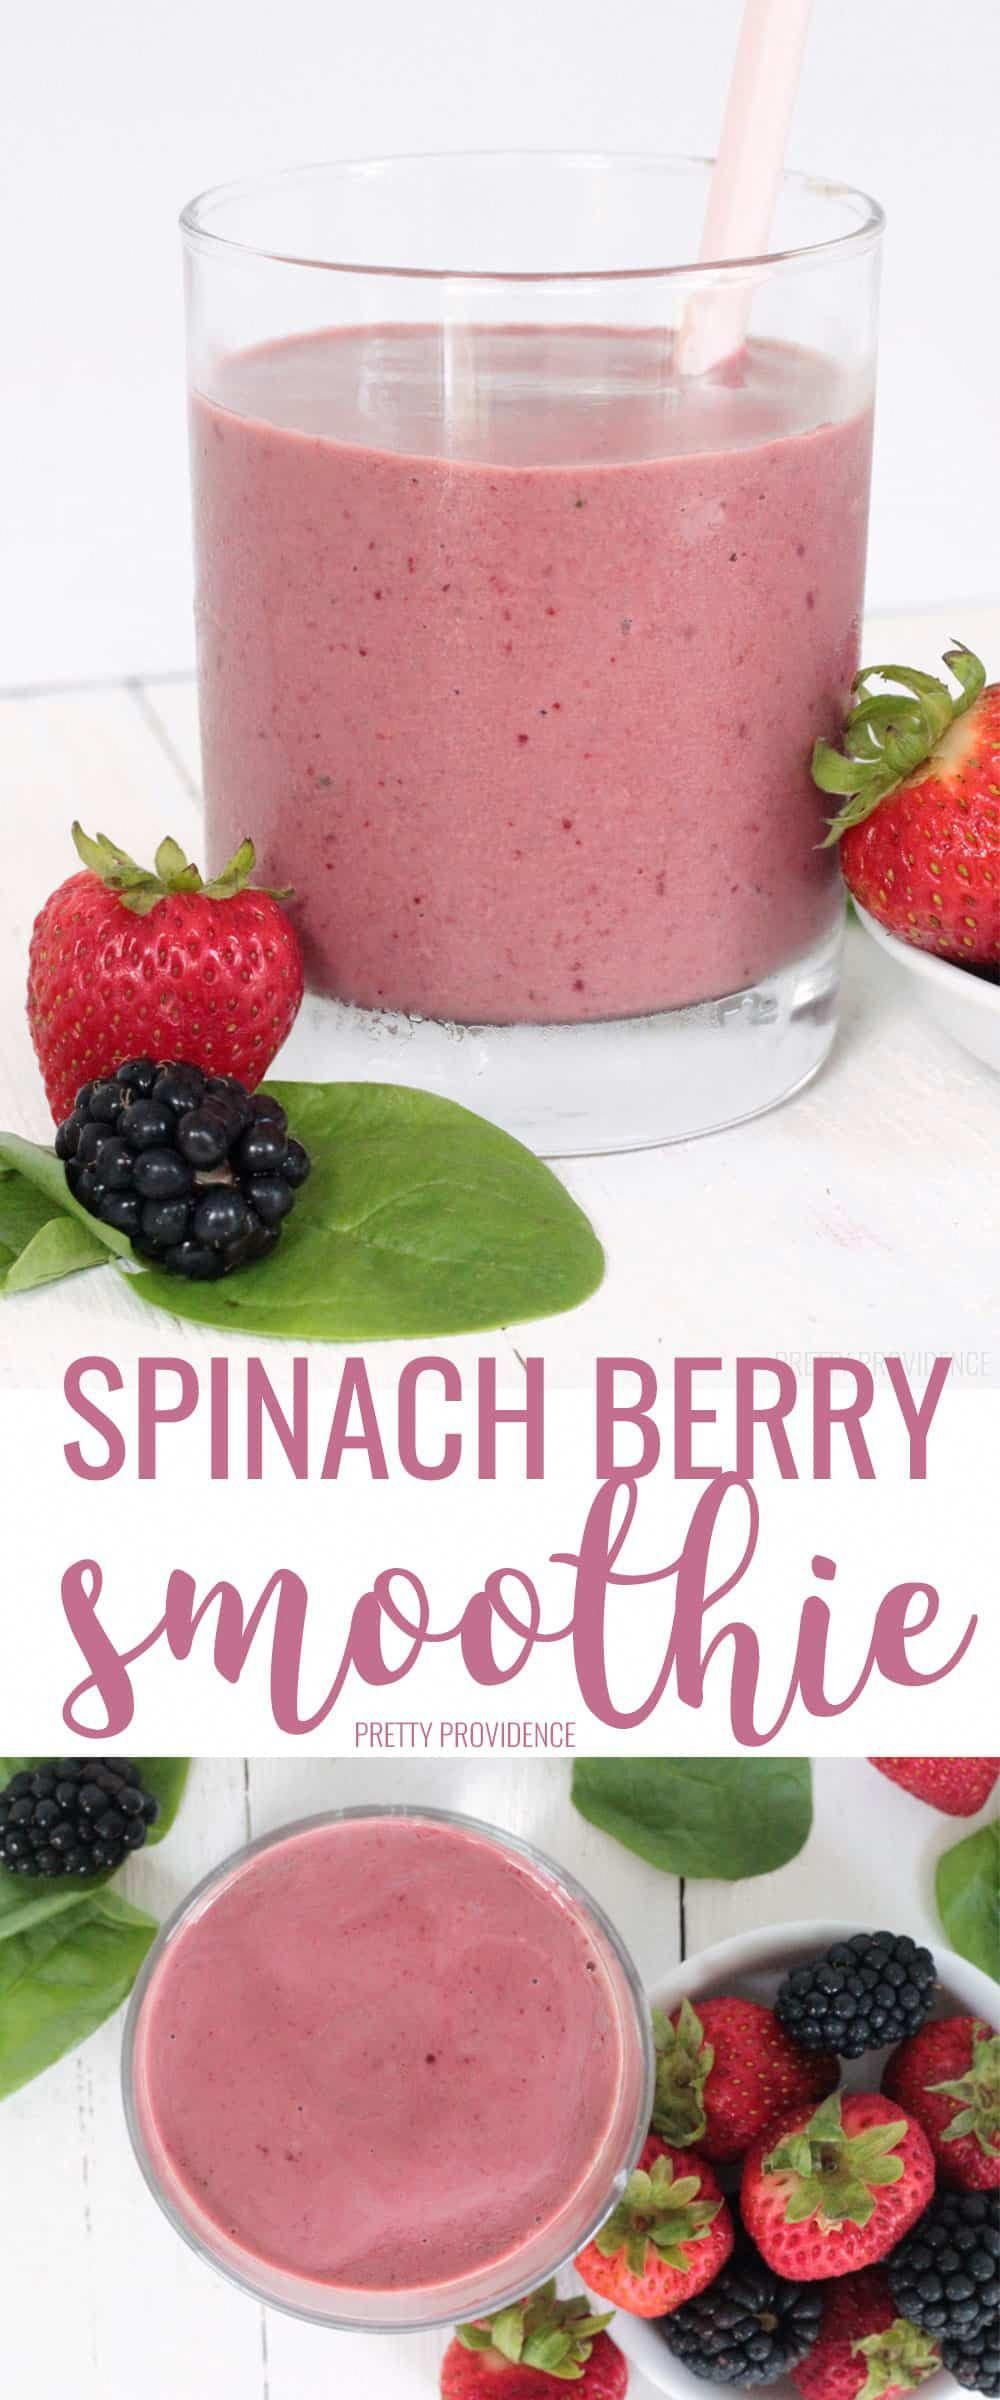 Spinach Berry Smoothie Recipe